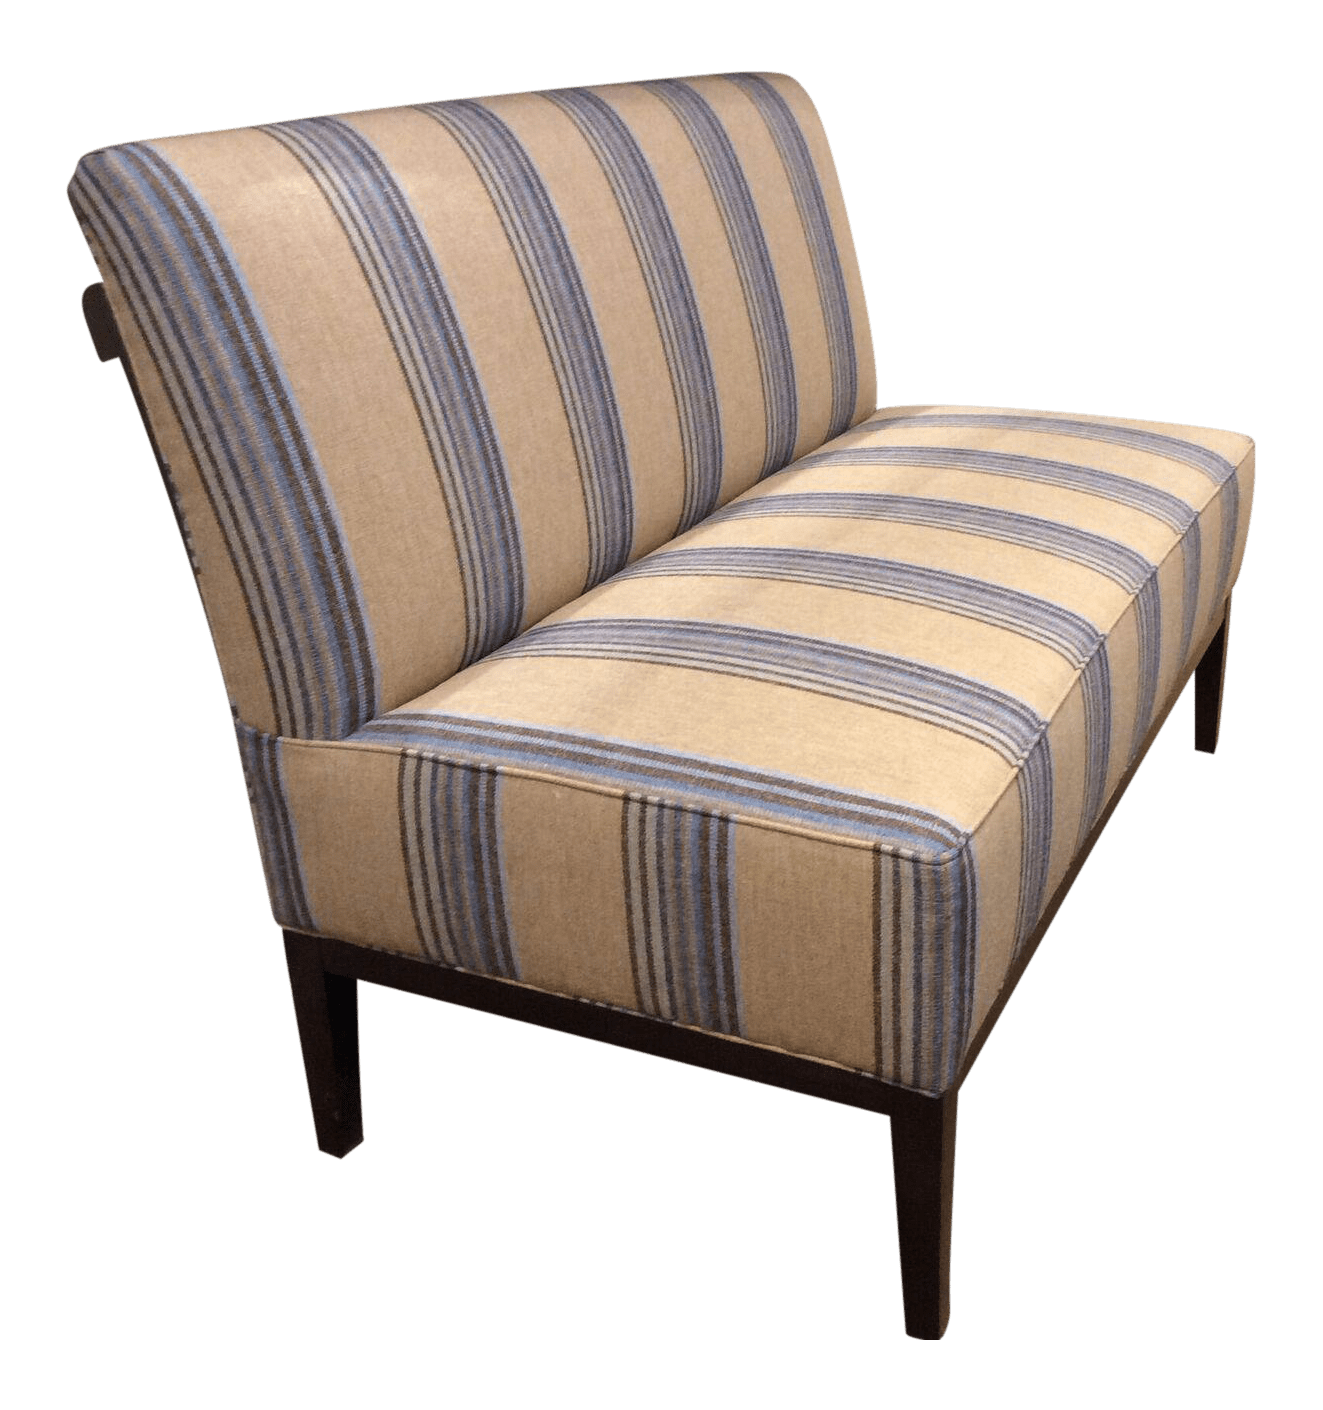 hickory chair banquette godrej revolving price list bistro chairish for sale